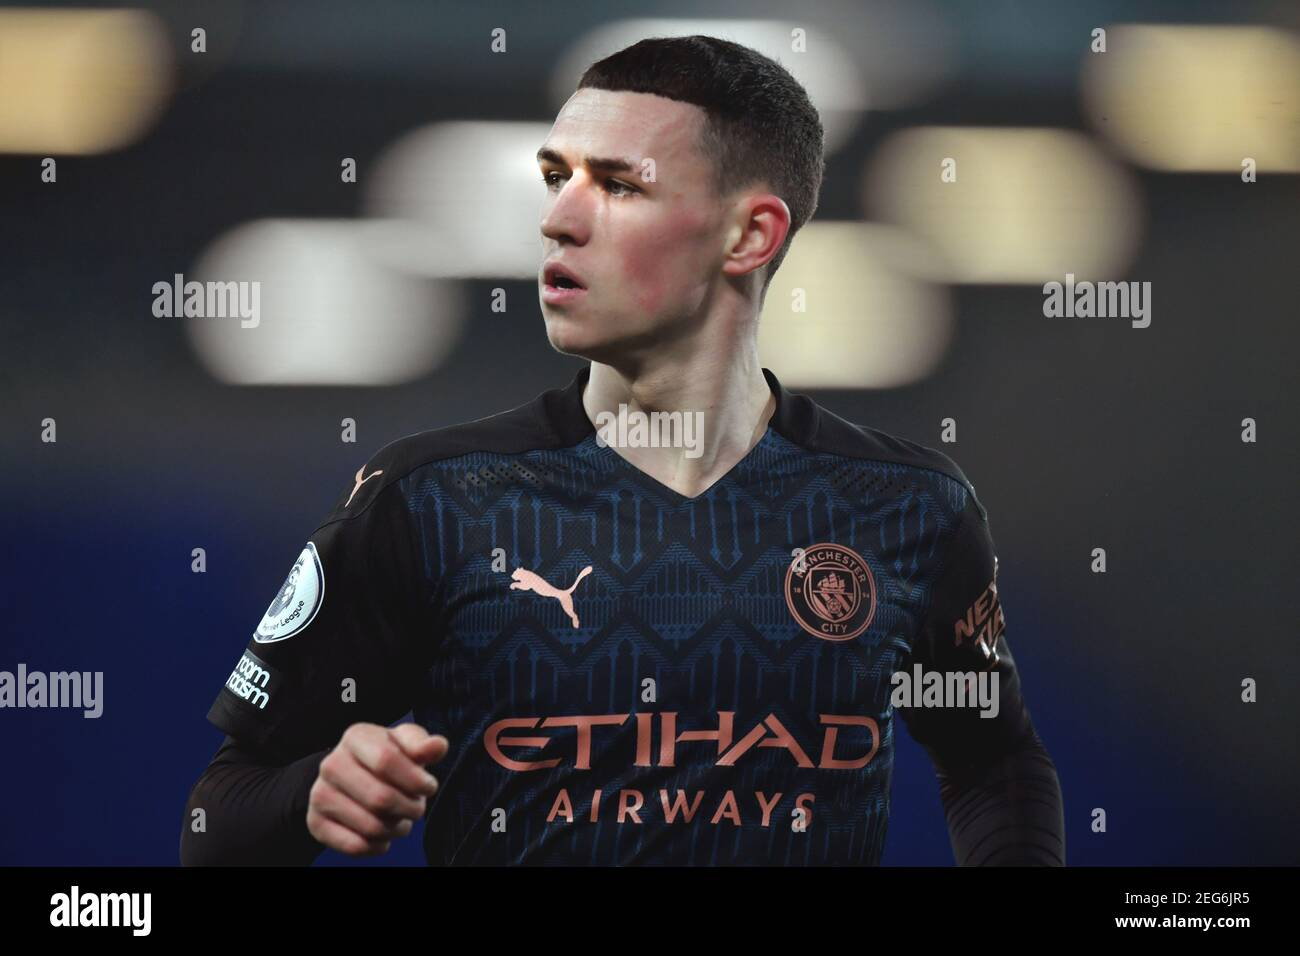 Liverpool, United Kingdom, 17th February 2021. Manchester City's Phil Foden. Credit: Anthony Devlin/Alamy Live News Stock Photo